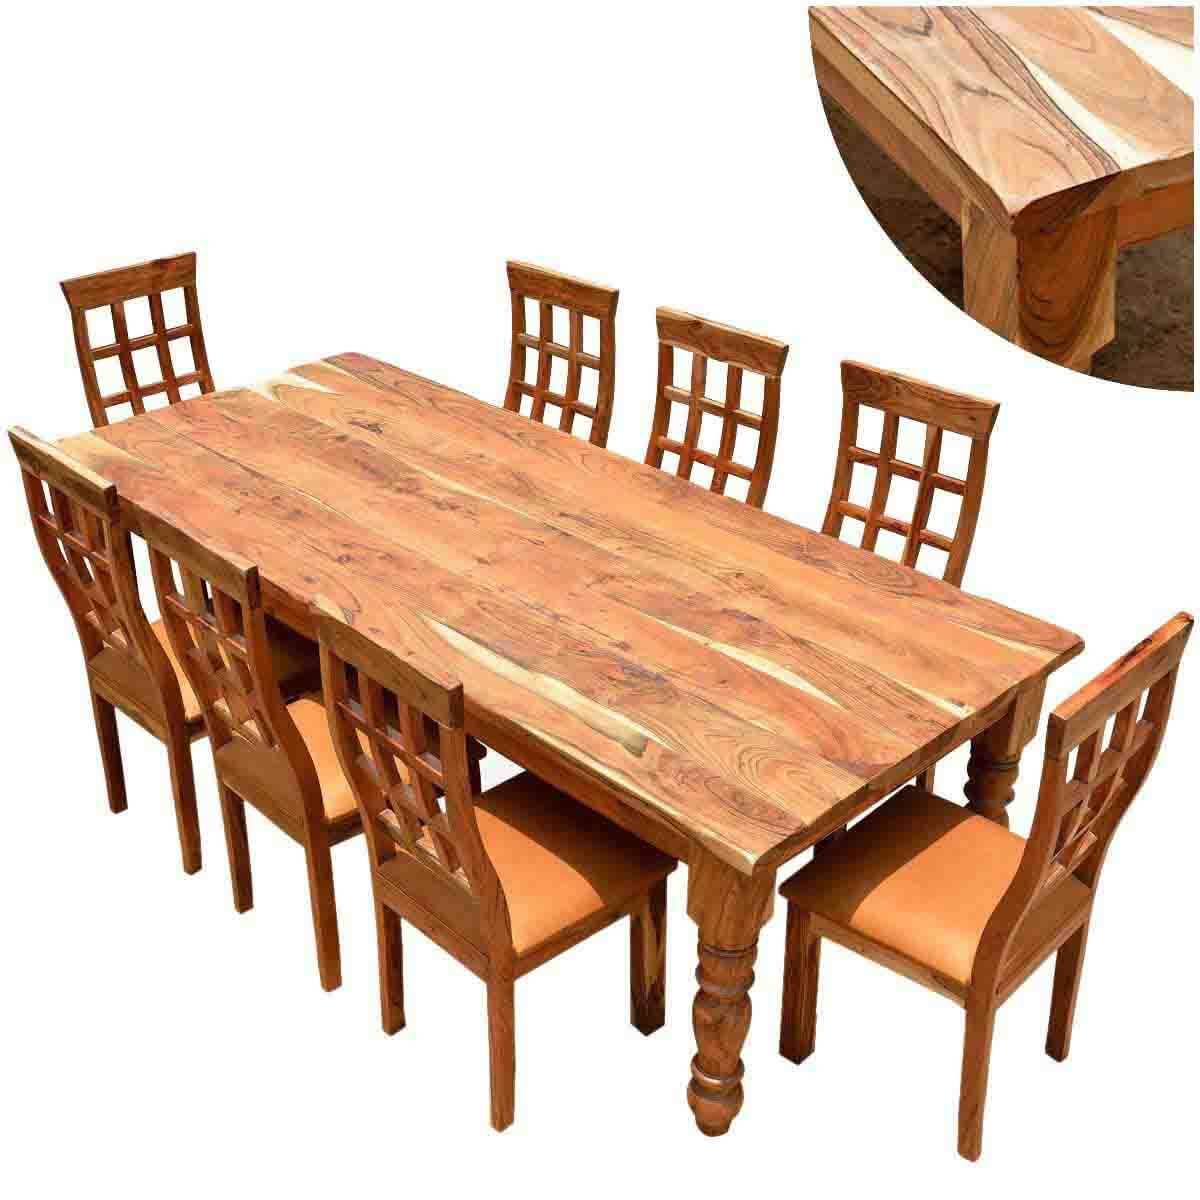 Rustic Furniture Farmhouse Solid Wood Dining Table Chair